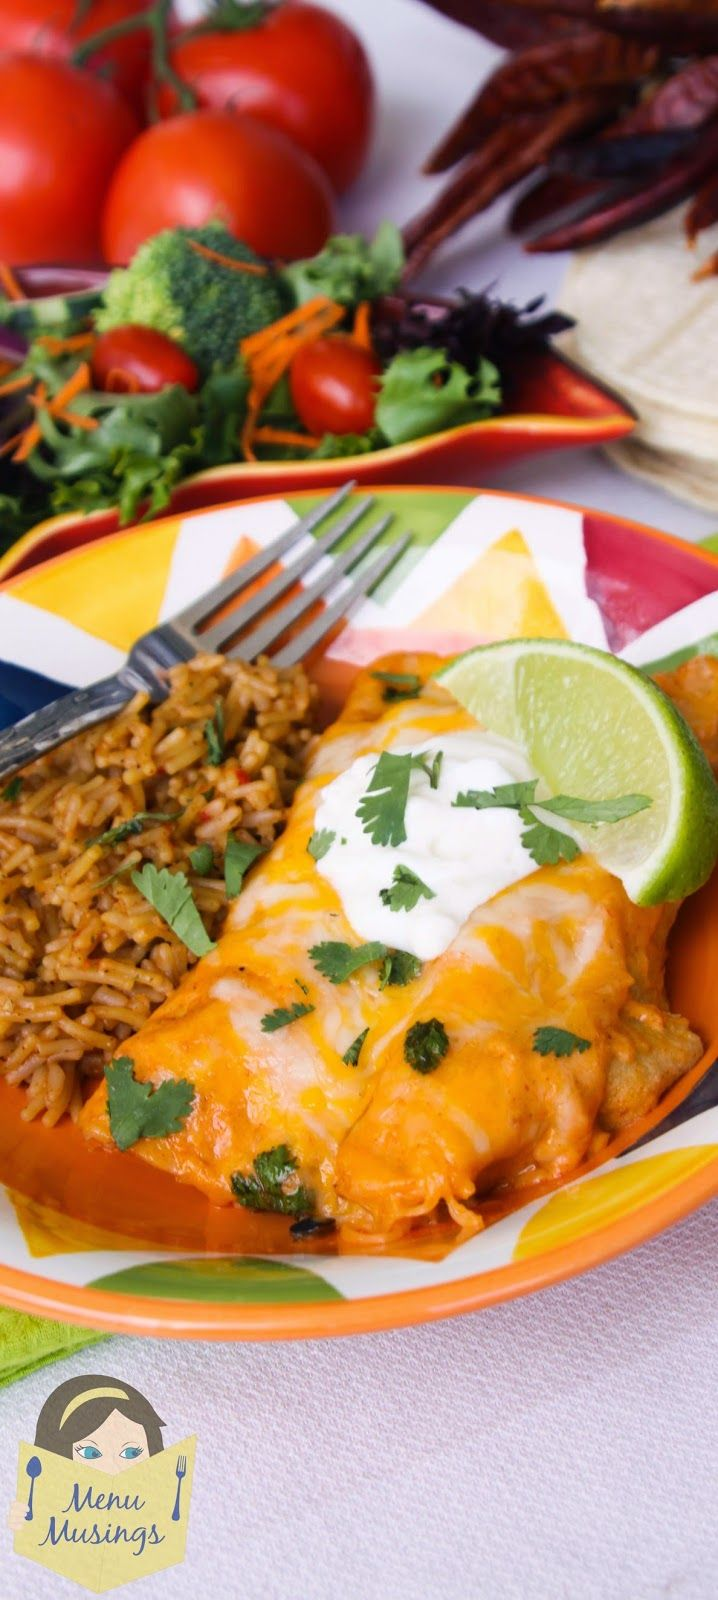 4595 best mexican italian cajun recipes images on pinterest easy beefy enchiladas step by step photos to take you through this family favorite recipe forumfinder Image collections